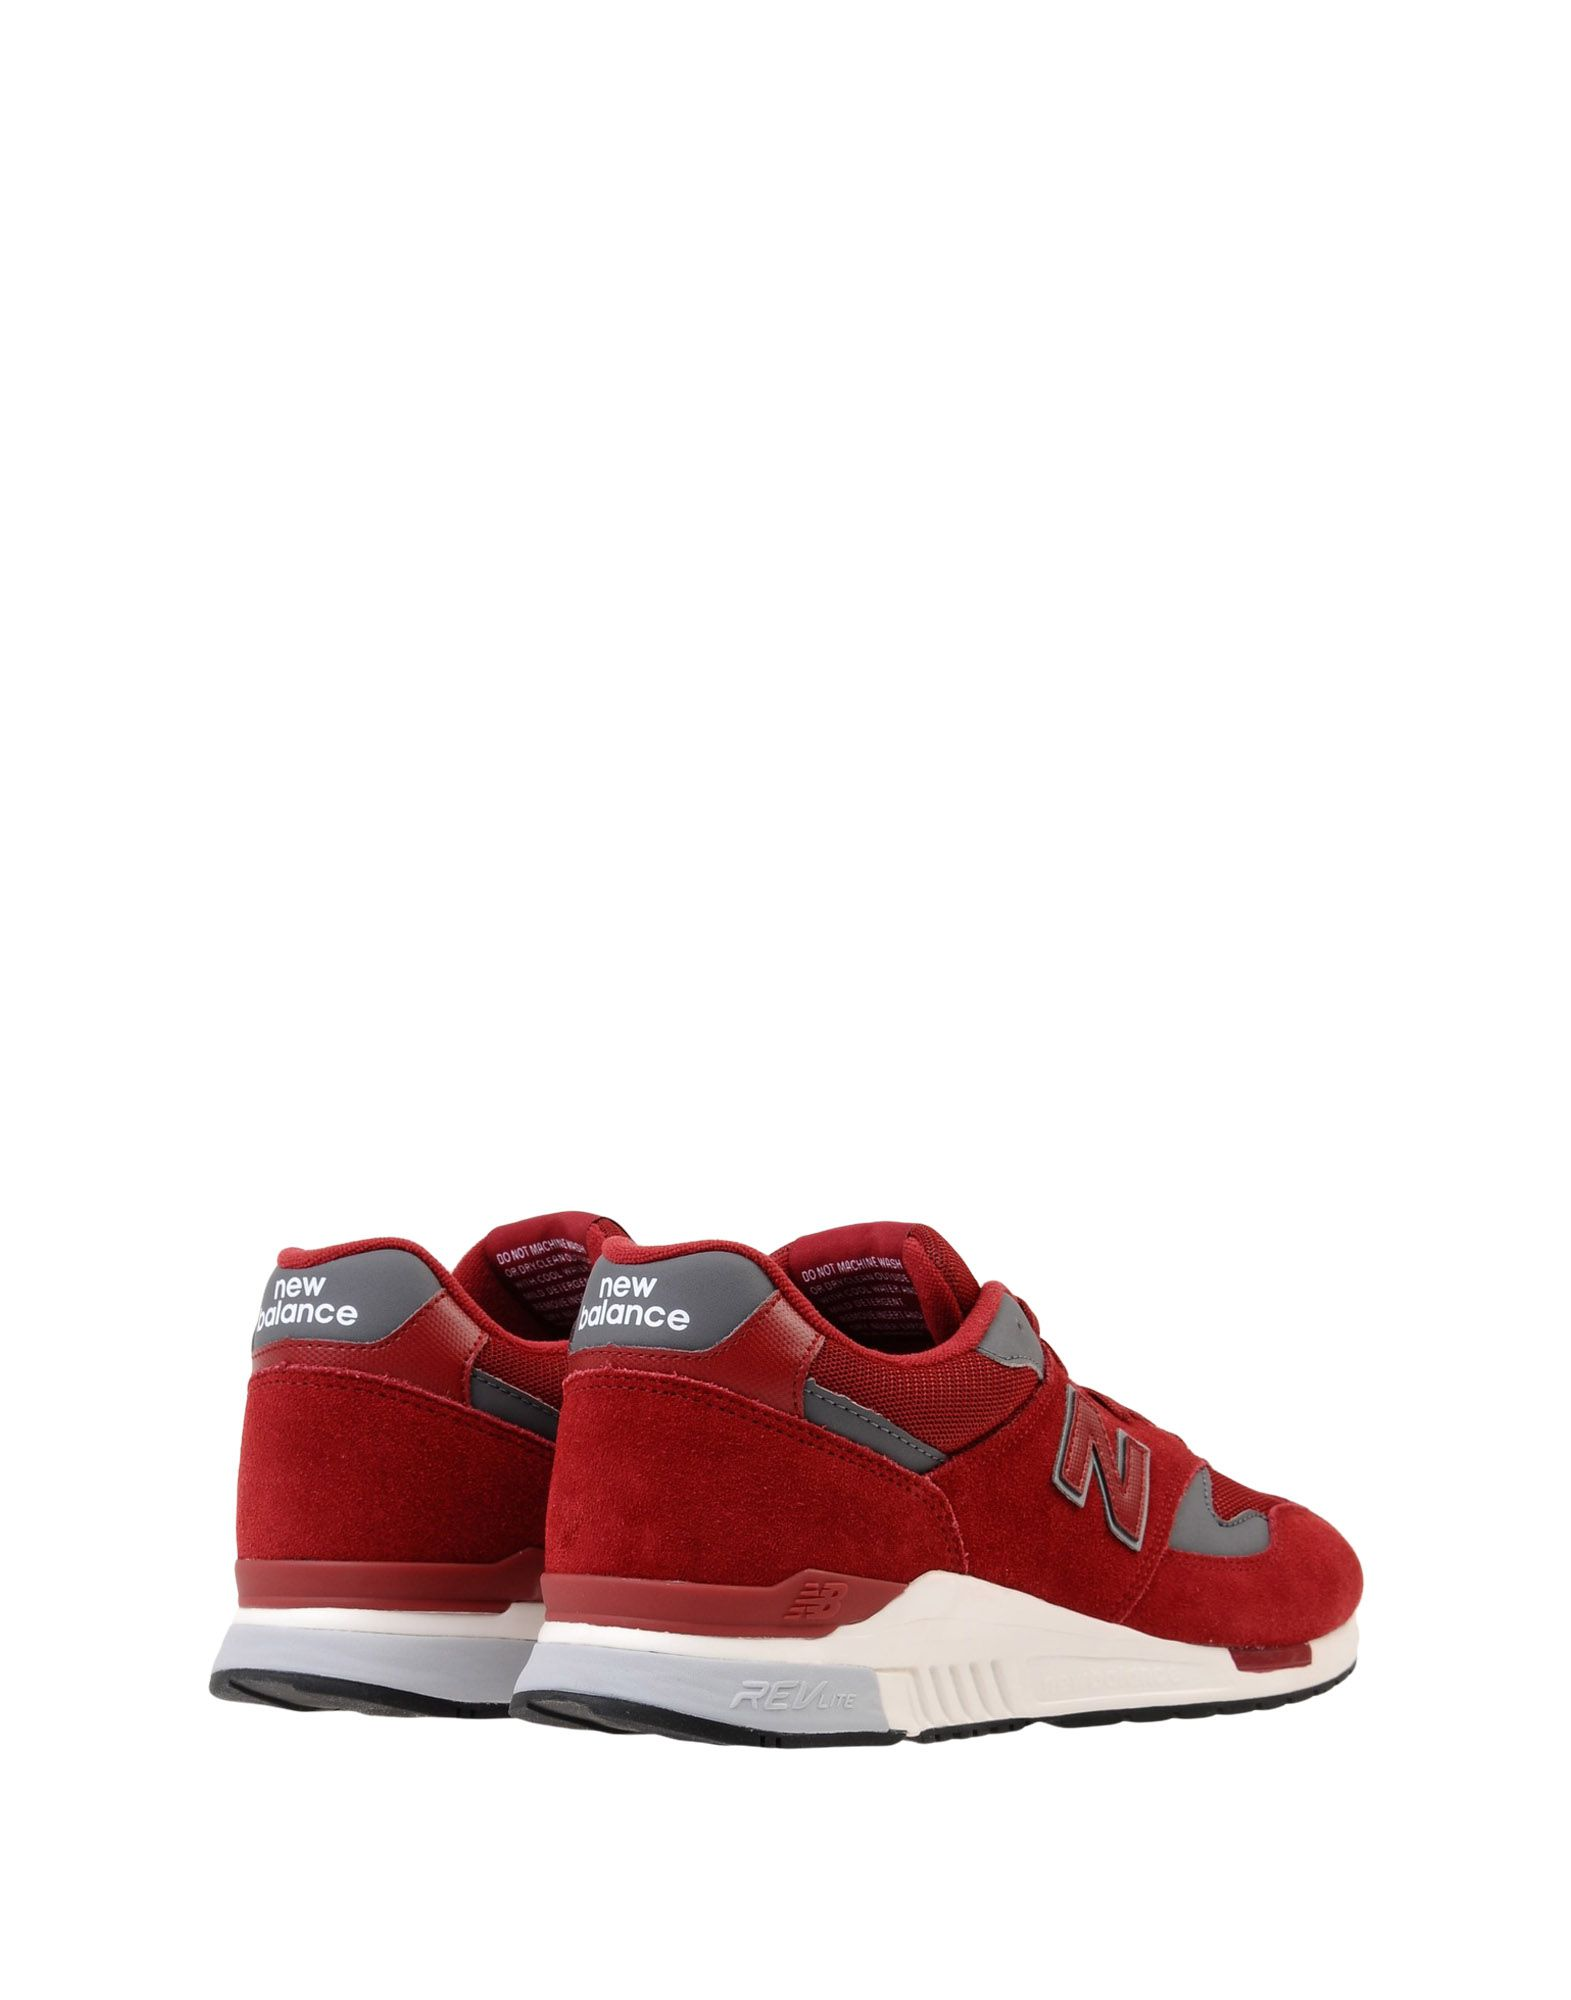 Sneakers New Balance 840 90S Running - Femme - Sneakers New Balance sur